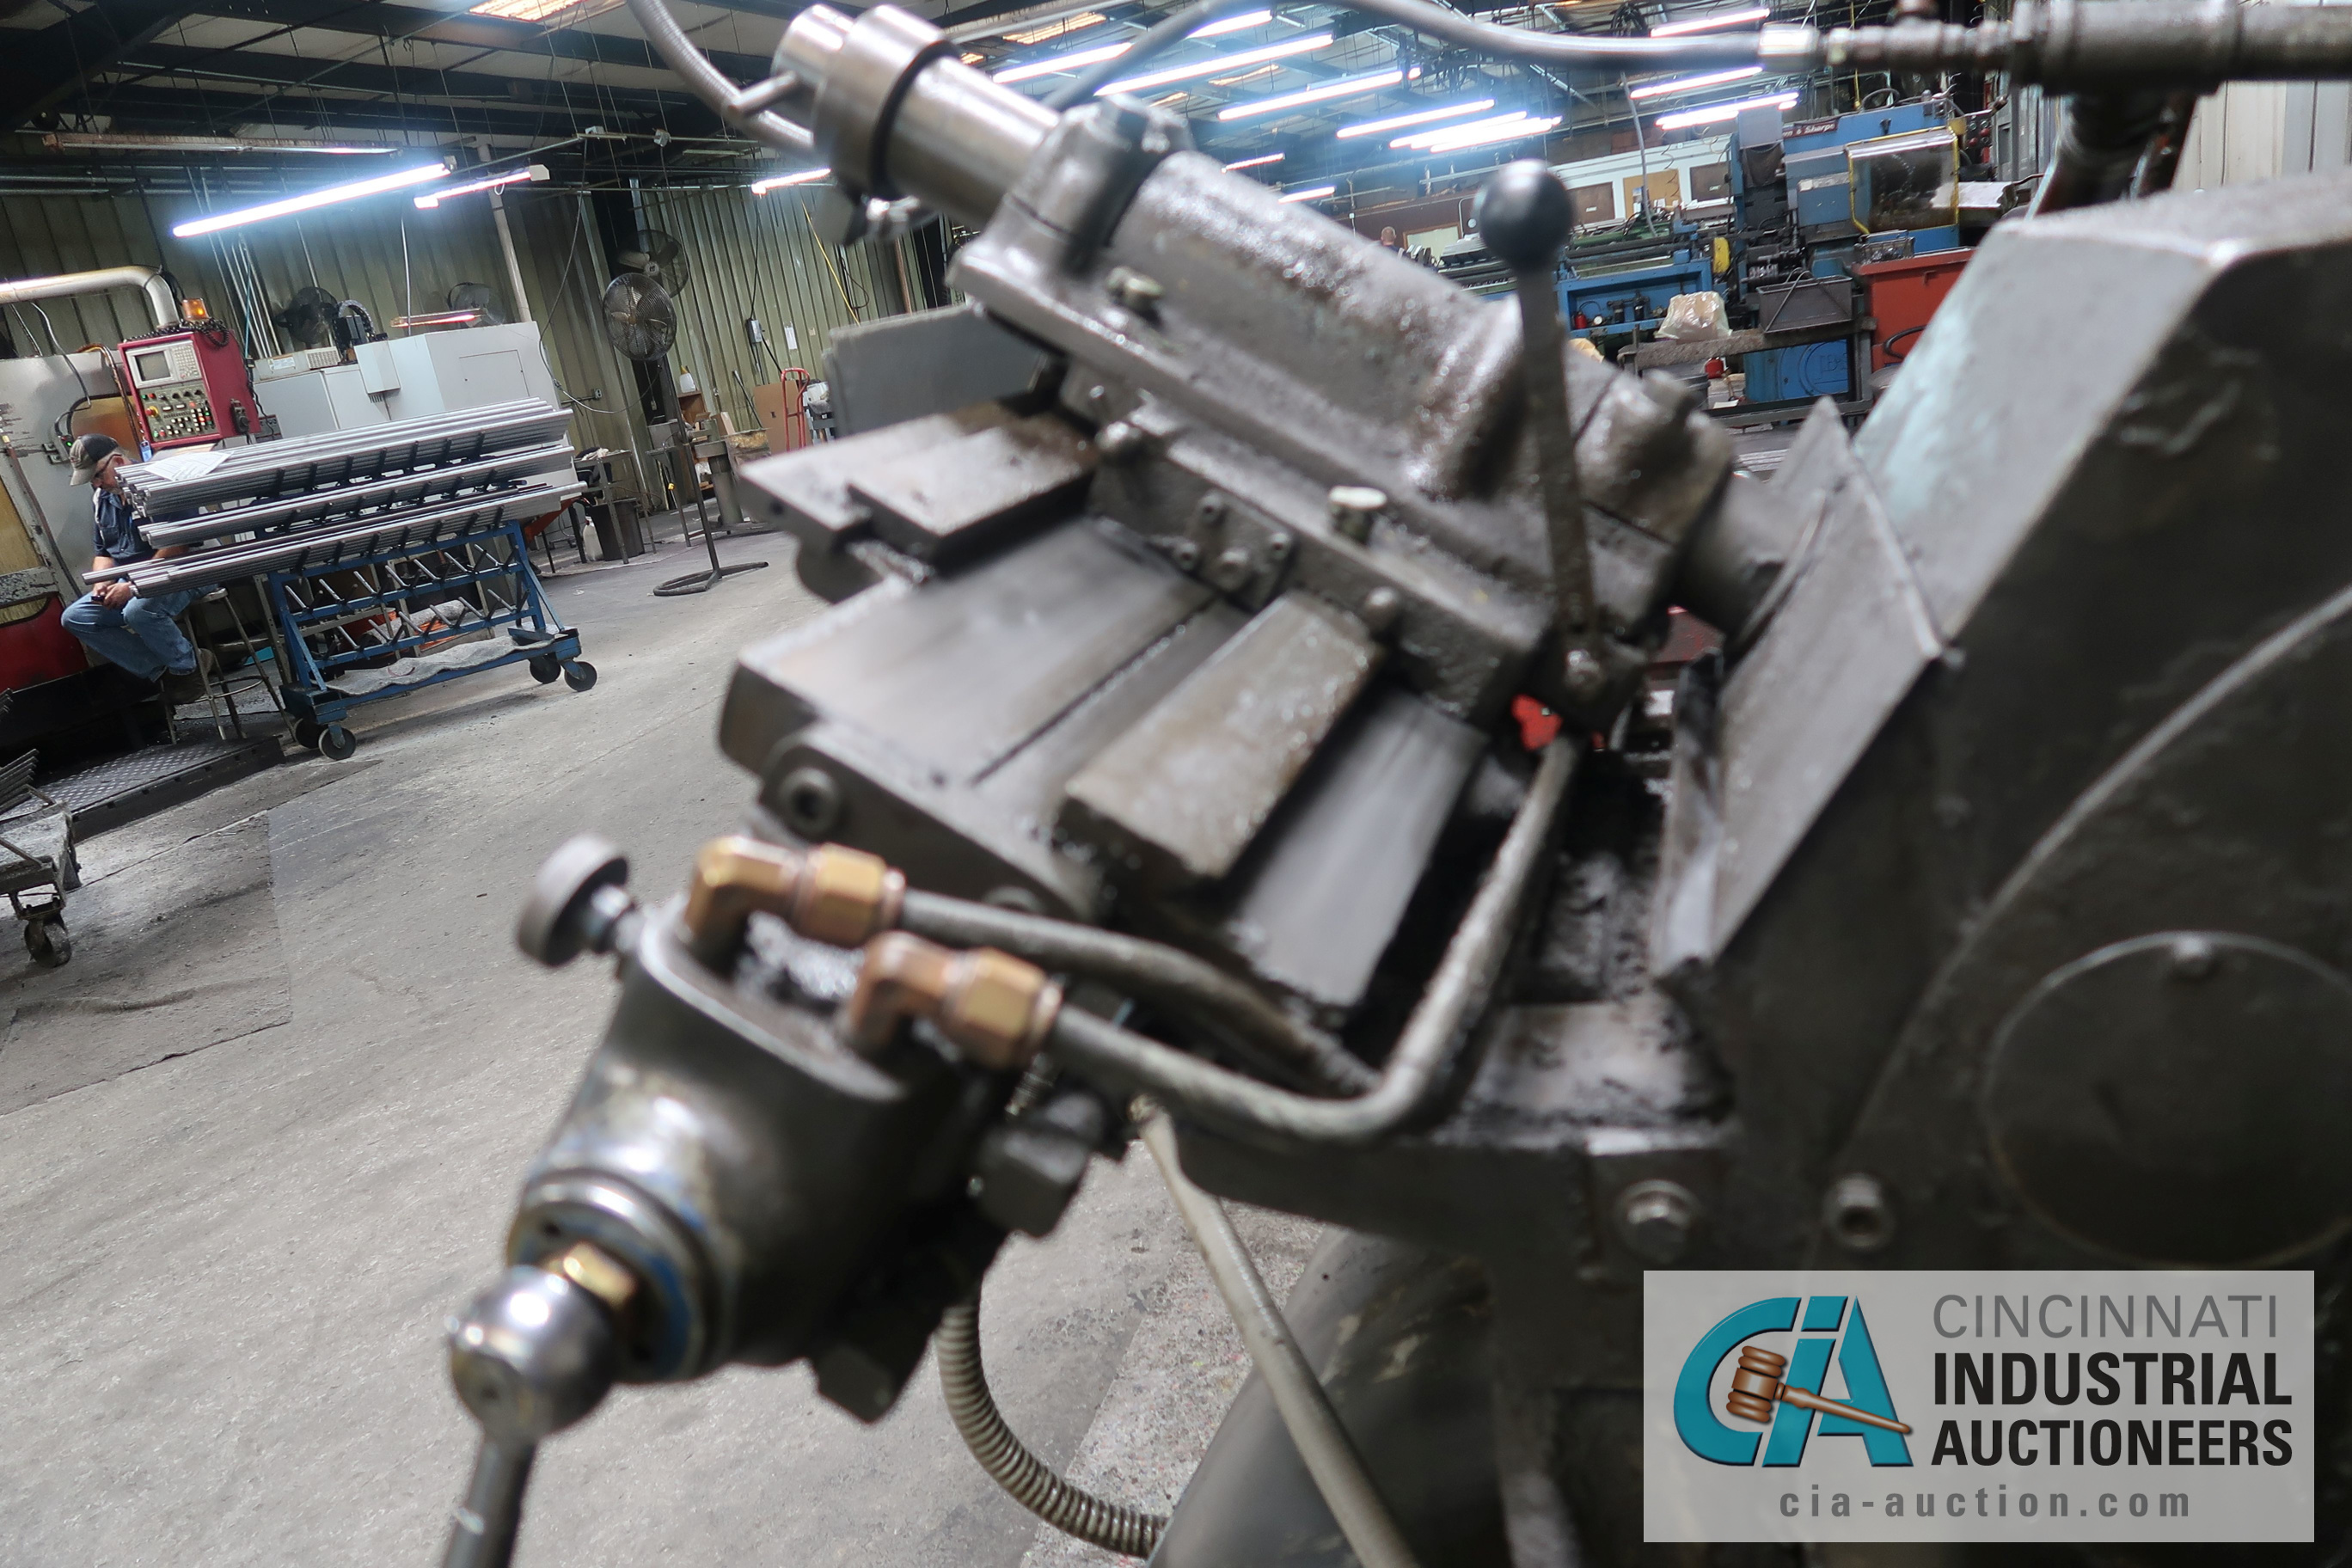 CINCINNATI MODEL 2 CENTERLESS GRINDER; S/N 2M2H1L-2160 WITH INFEED AND OUTFEED CONVEYORS - Image 6 of 6